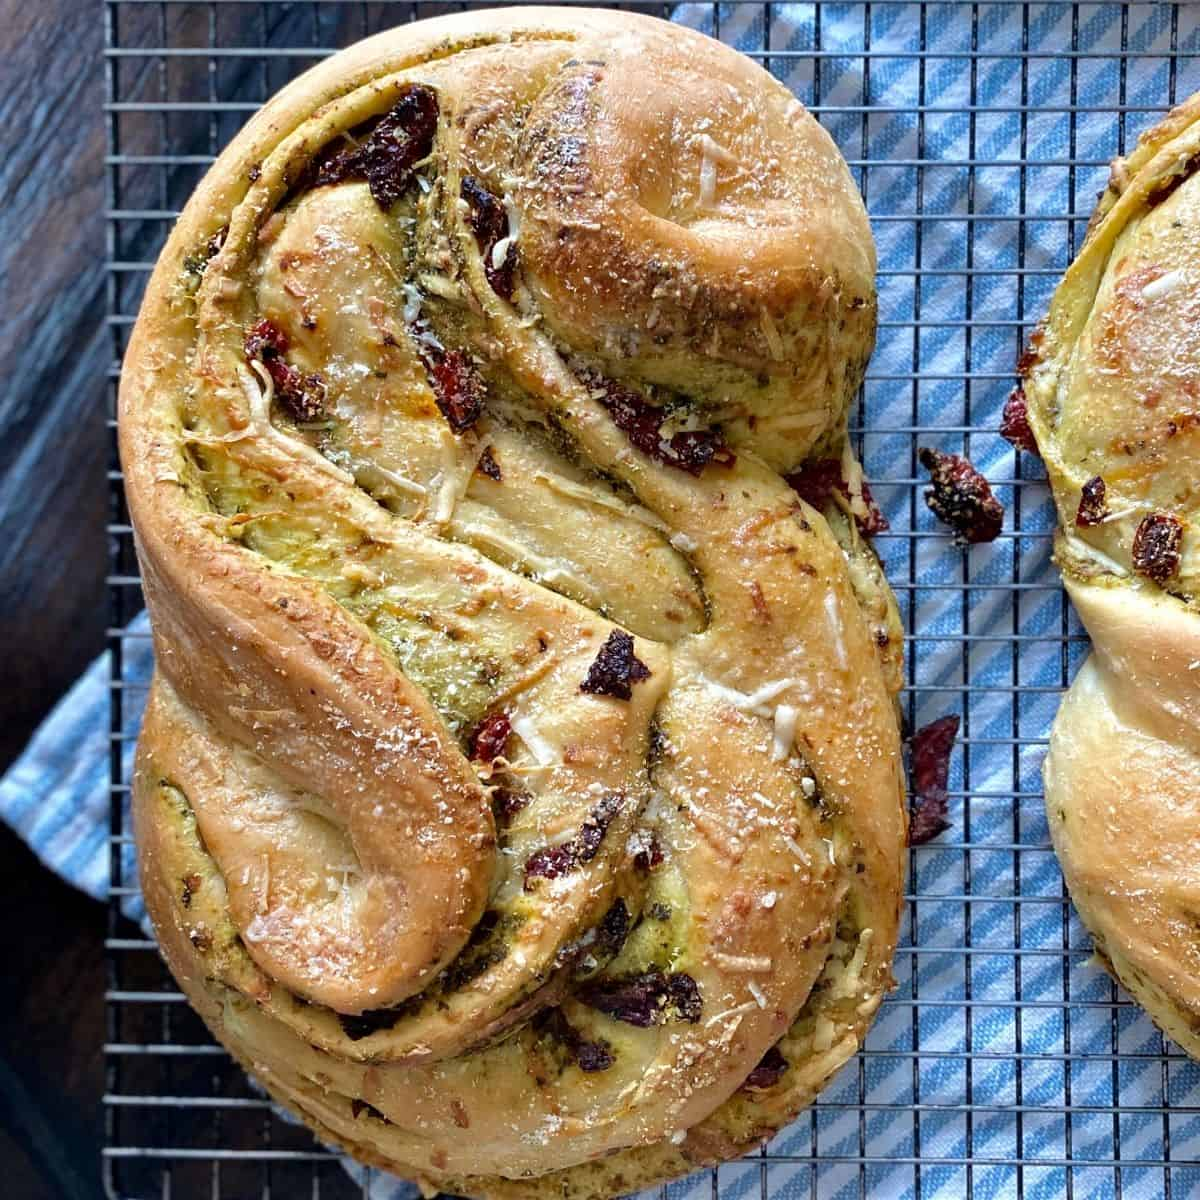 baked bread stuffed with pesto and sindried tomatoes on cooling rack